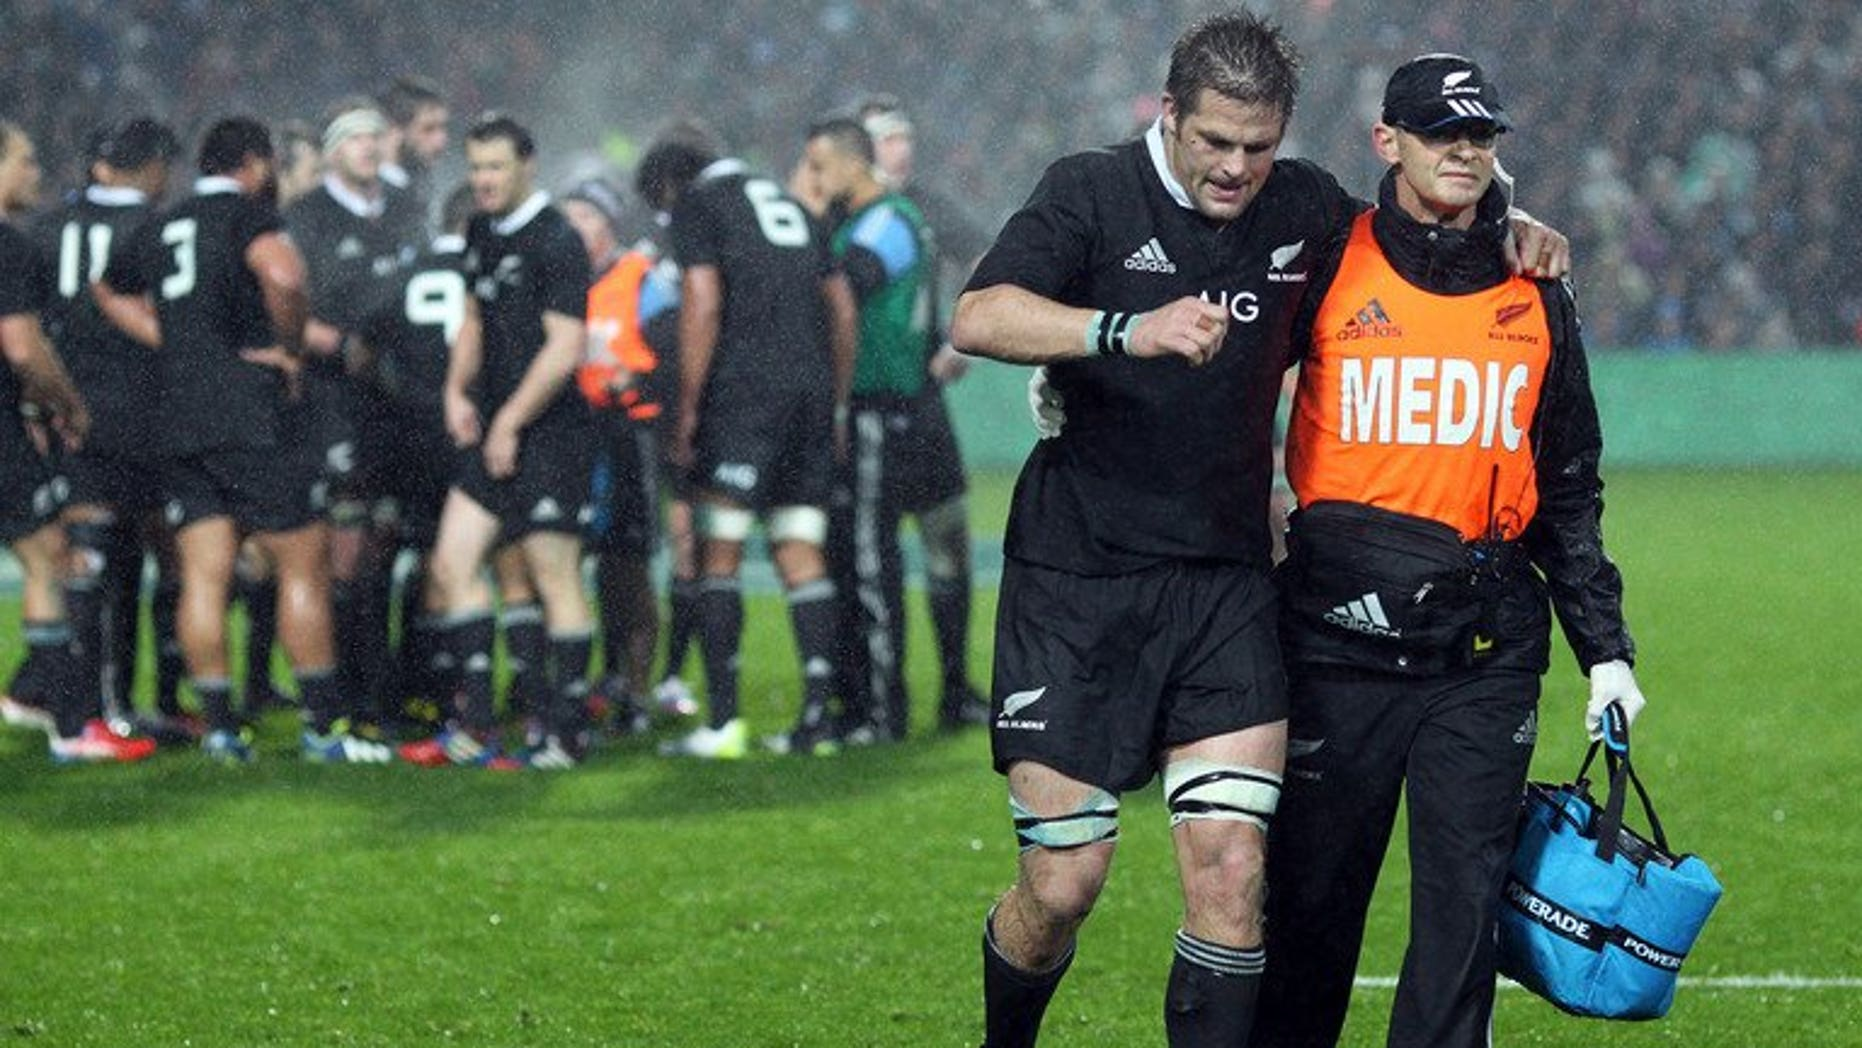 """New Zealand's Richie McCaw is helped off the field during the Rugby Championship match against South Africa on September 7, 2013. The Springboks landed in Auckland Monday for """"the ultimate challenge"""" against the All Blacks next weekend, claiming they remain the underdogs despite New Zealand losing McCaw."""